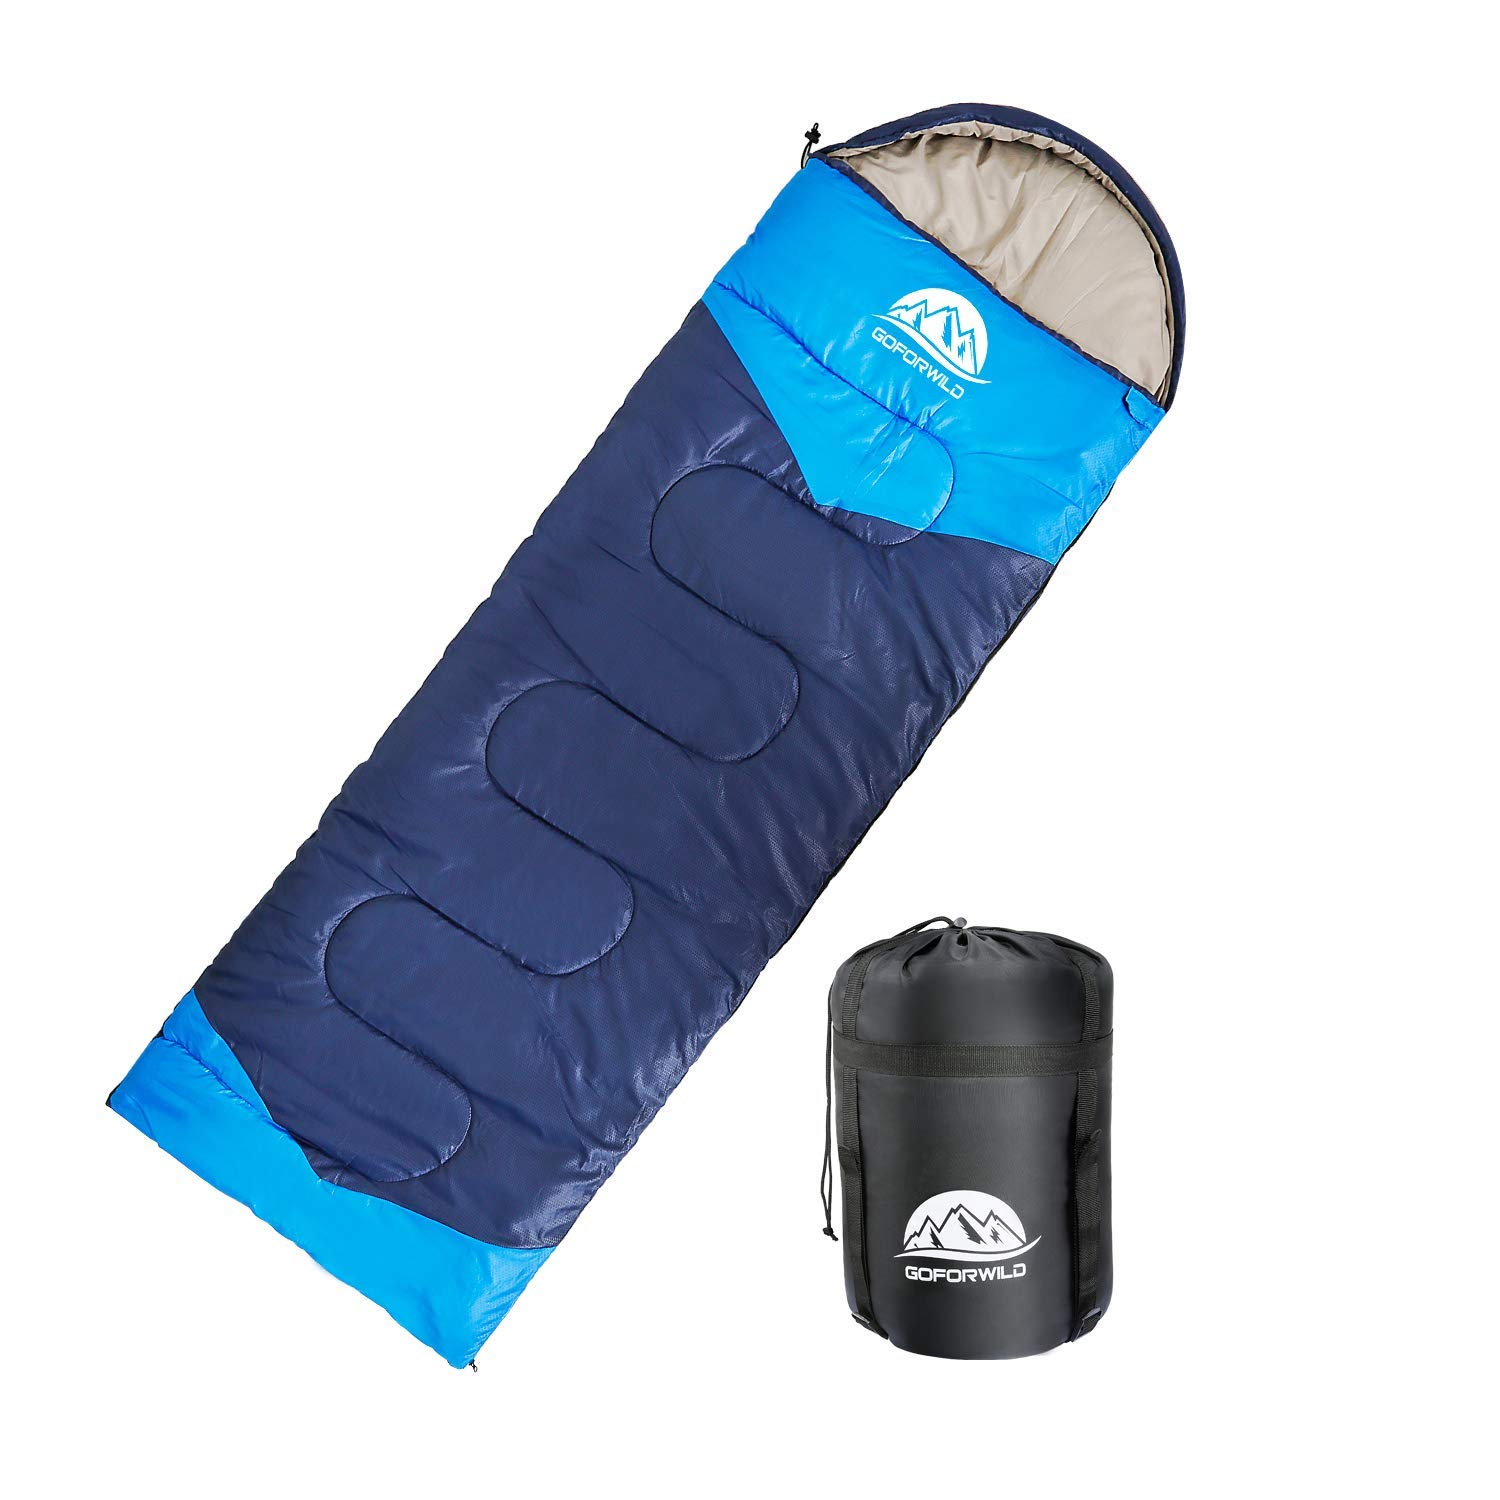 GOFORWILD Sleeping Bag & Envelope Lightweight Portable Waterproof [並行輸入品] Backpacking & Comfort with Compression Sack 4 Season Warm & Cool Weather Camping Hiking Travelling Outdoor Activities for Kids & Adults [並行輸入品] B07R3Y7DGH, 生成りな暮らしのご提案/キナル:63a1a849 --- anime-portal.club